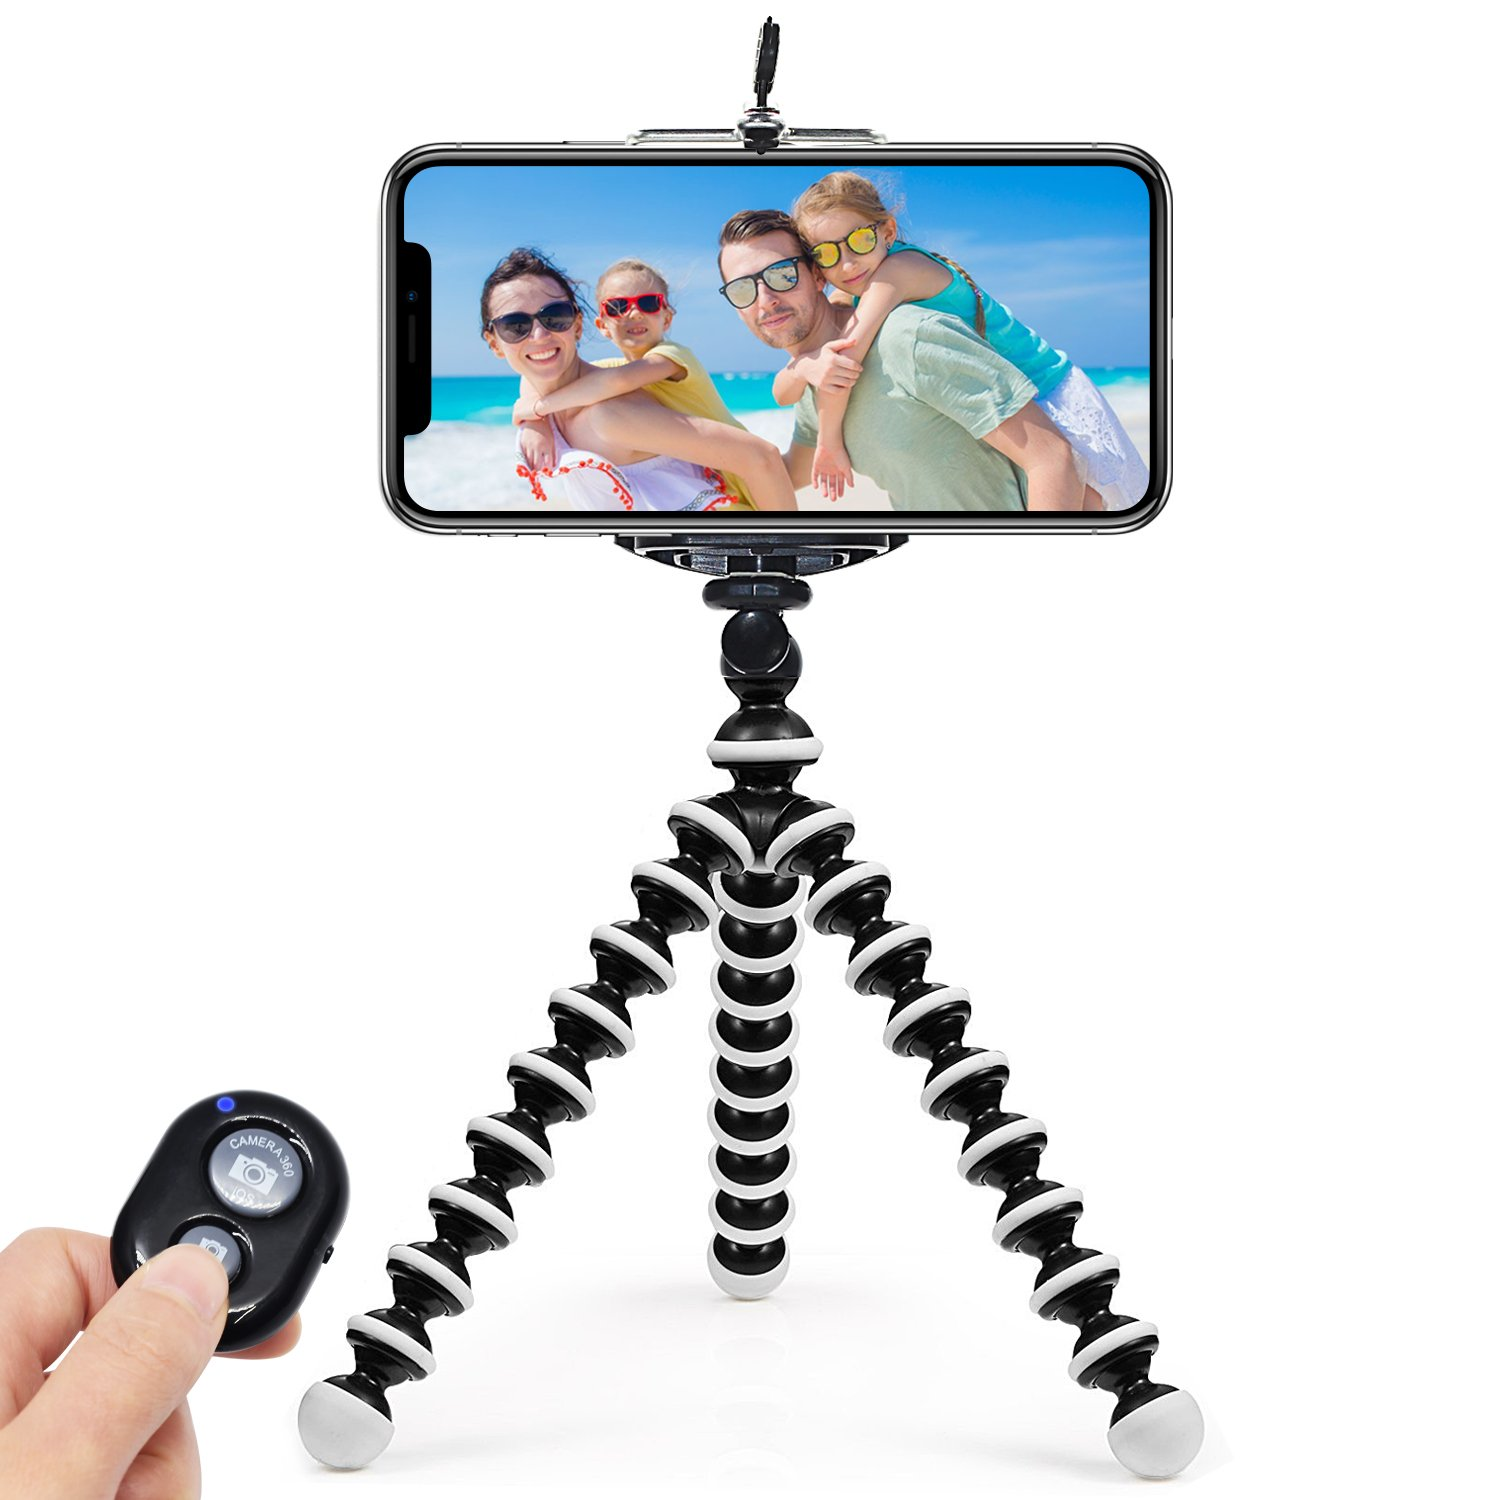 ARNIL iPhone Tripod Tripod for iPhone Portable and Adjustable Phone Tripod Stand Holder for iPhone, Cellphone, Camera with Universal Clip and Remote Shutter